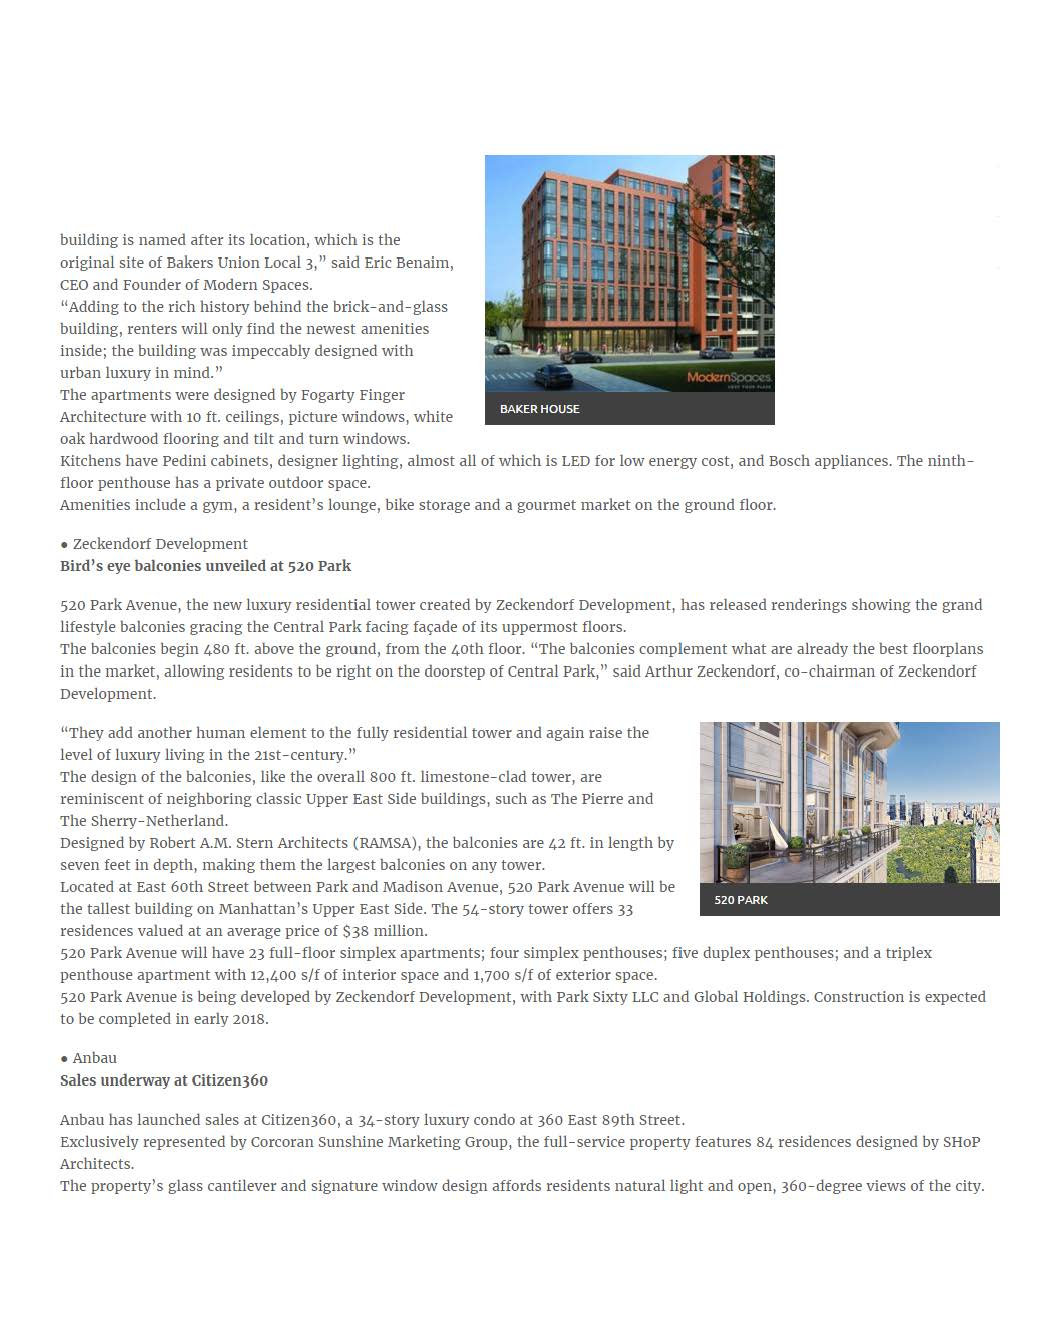 REW Online - NEW DEVELOPMENT, Baker House in LIC launches leasing, 520 Park unveils top floors - 02.26.16_Page_2